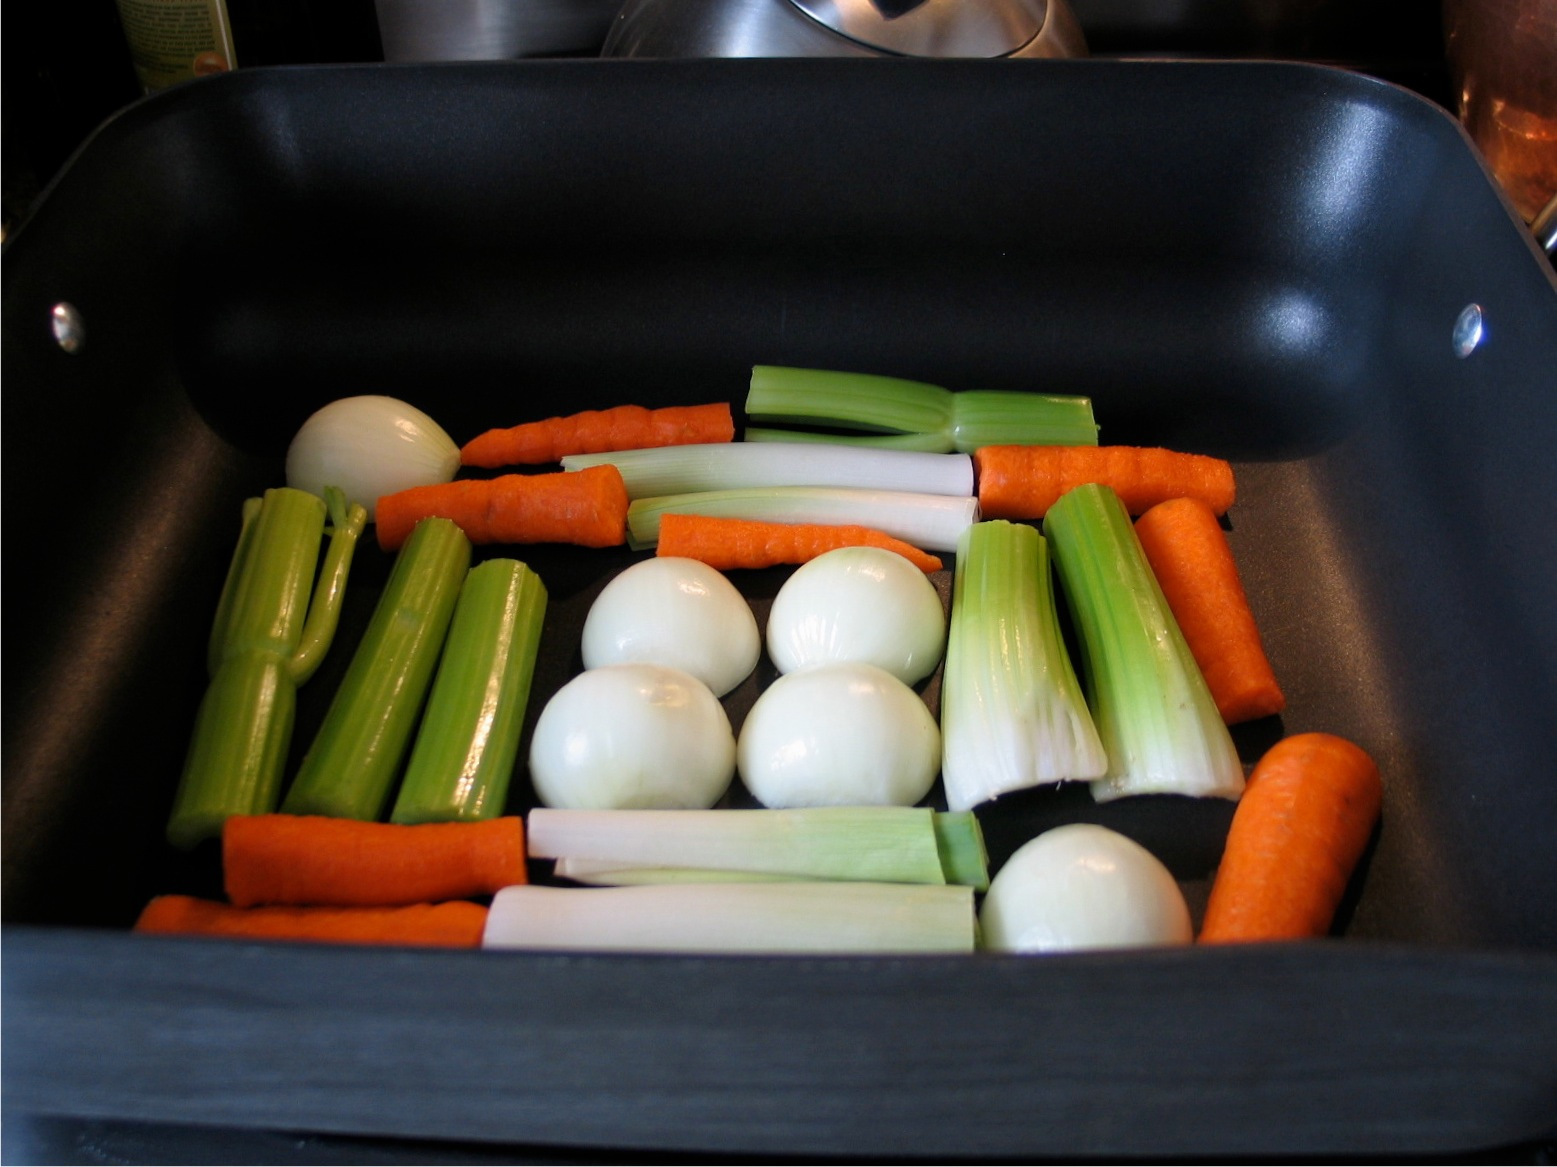 Turkey vegetable rack.